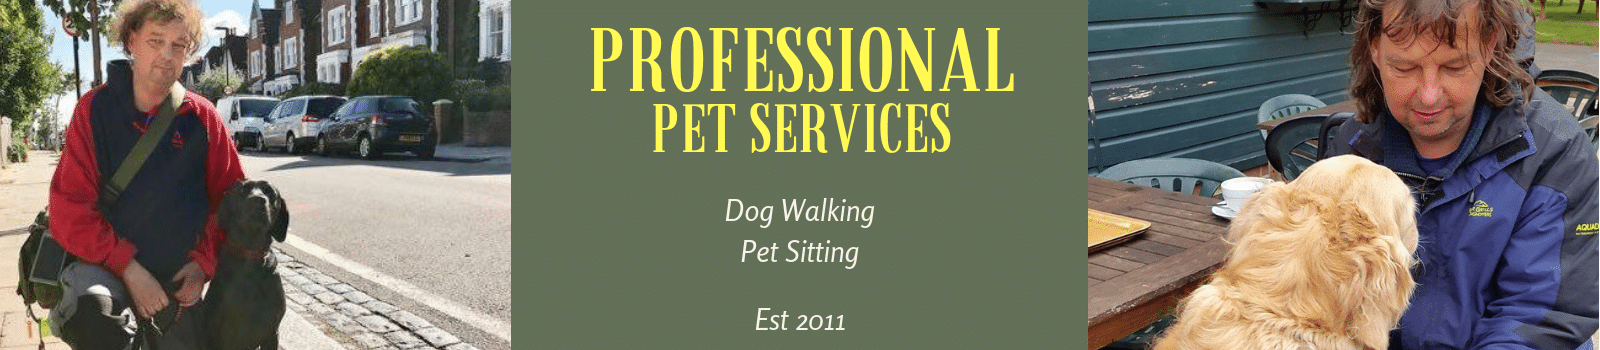 Finchley Dog Walker - Professional Pet Services